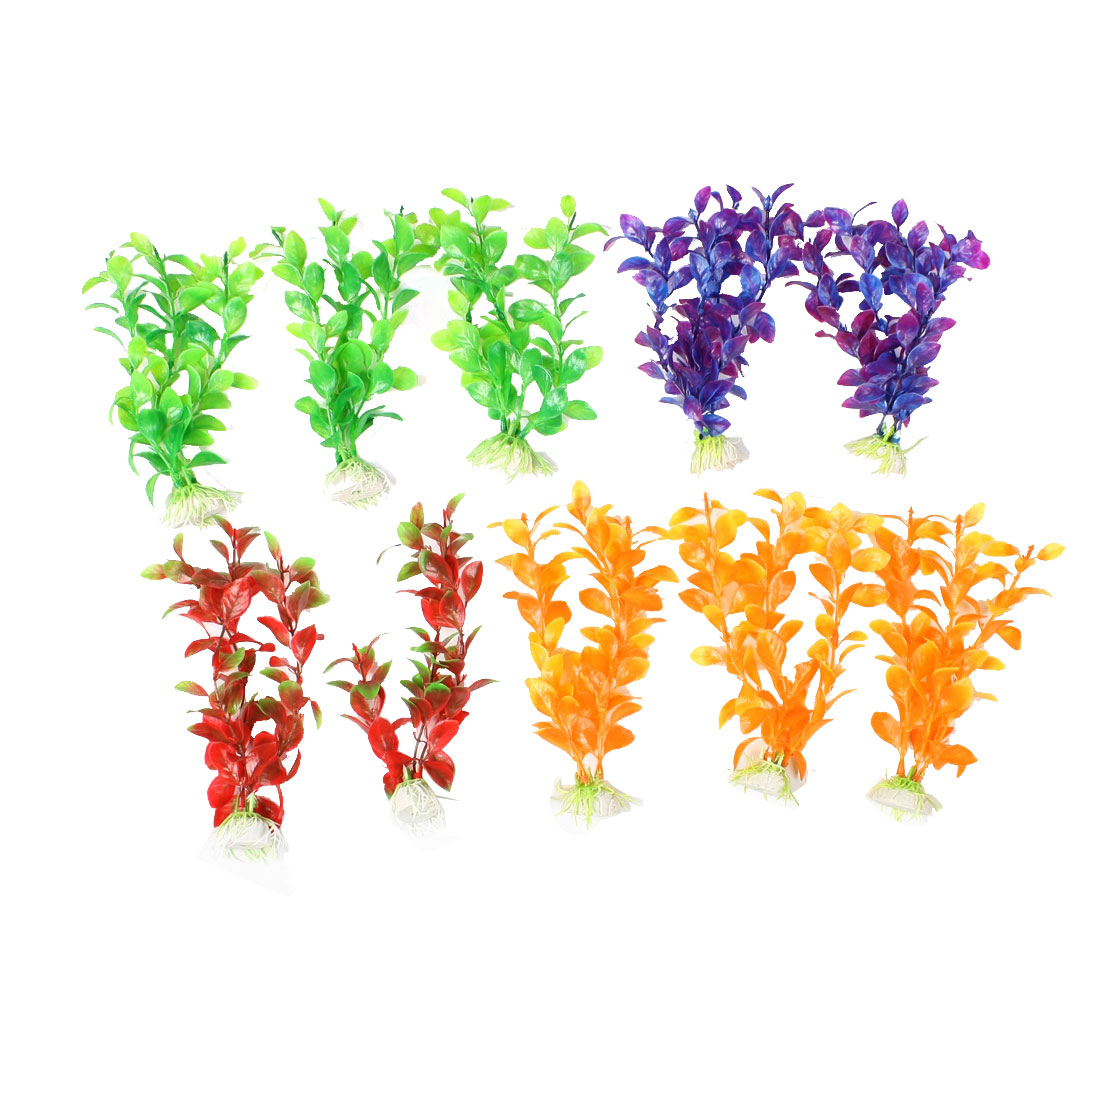 10 x Ceramic Base Assorted Color Plastic Plants Ornament for Aquarium